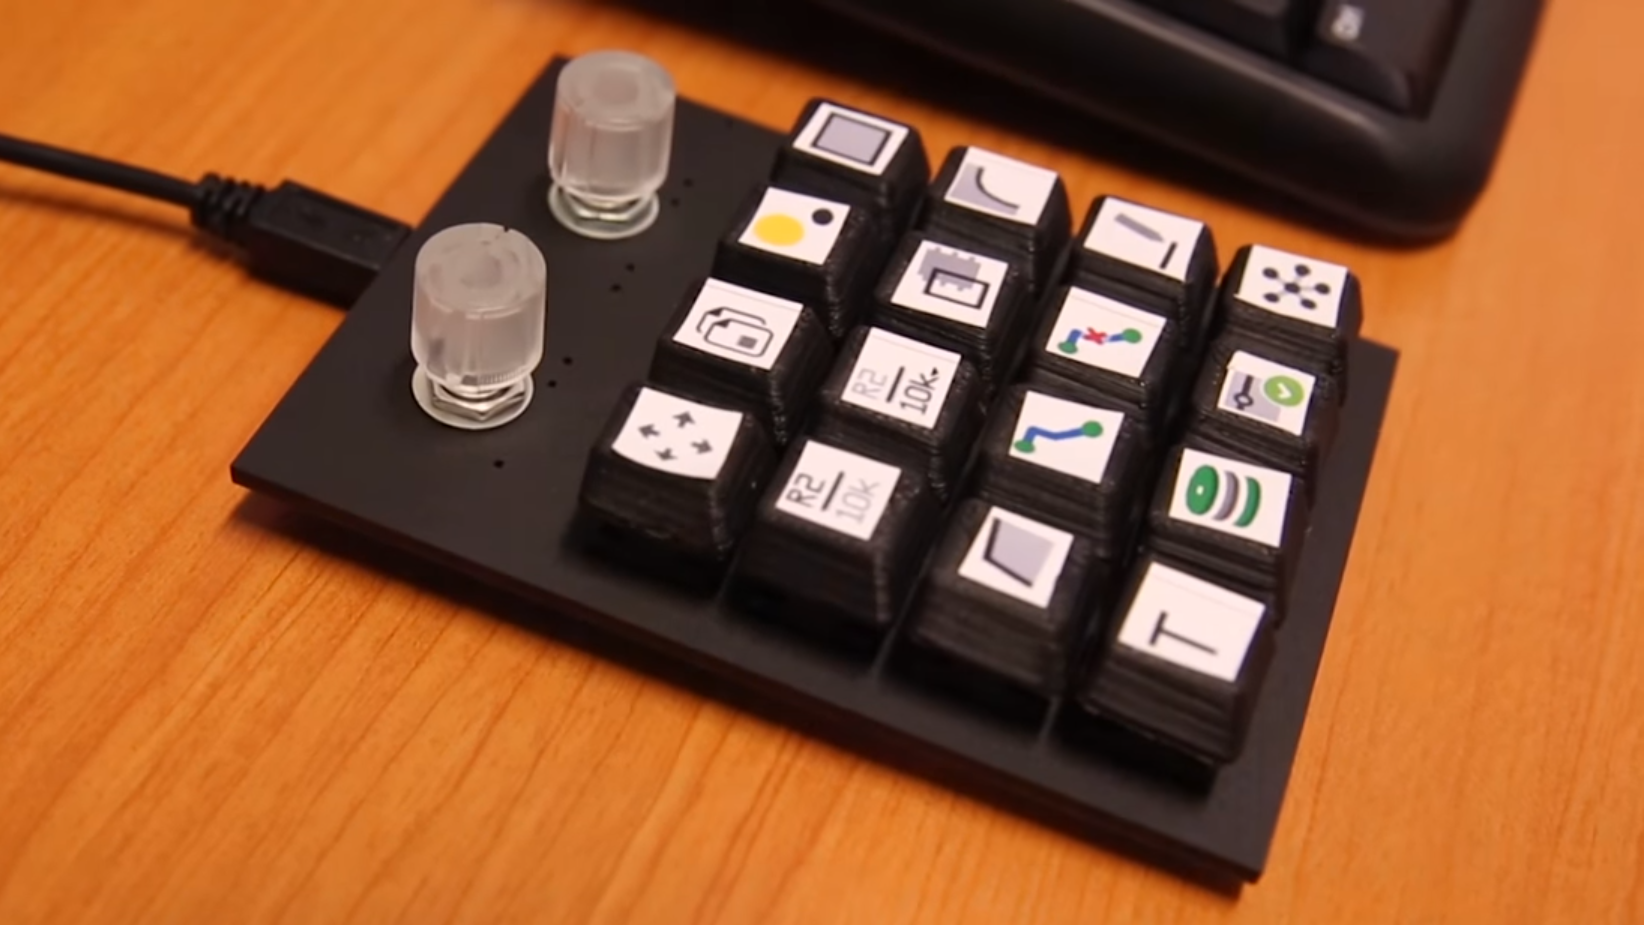 Diy Shortcut Keyboard